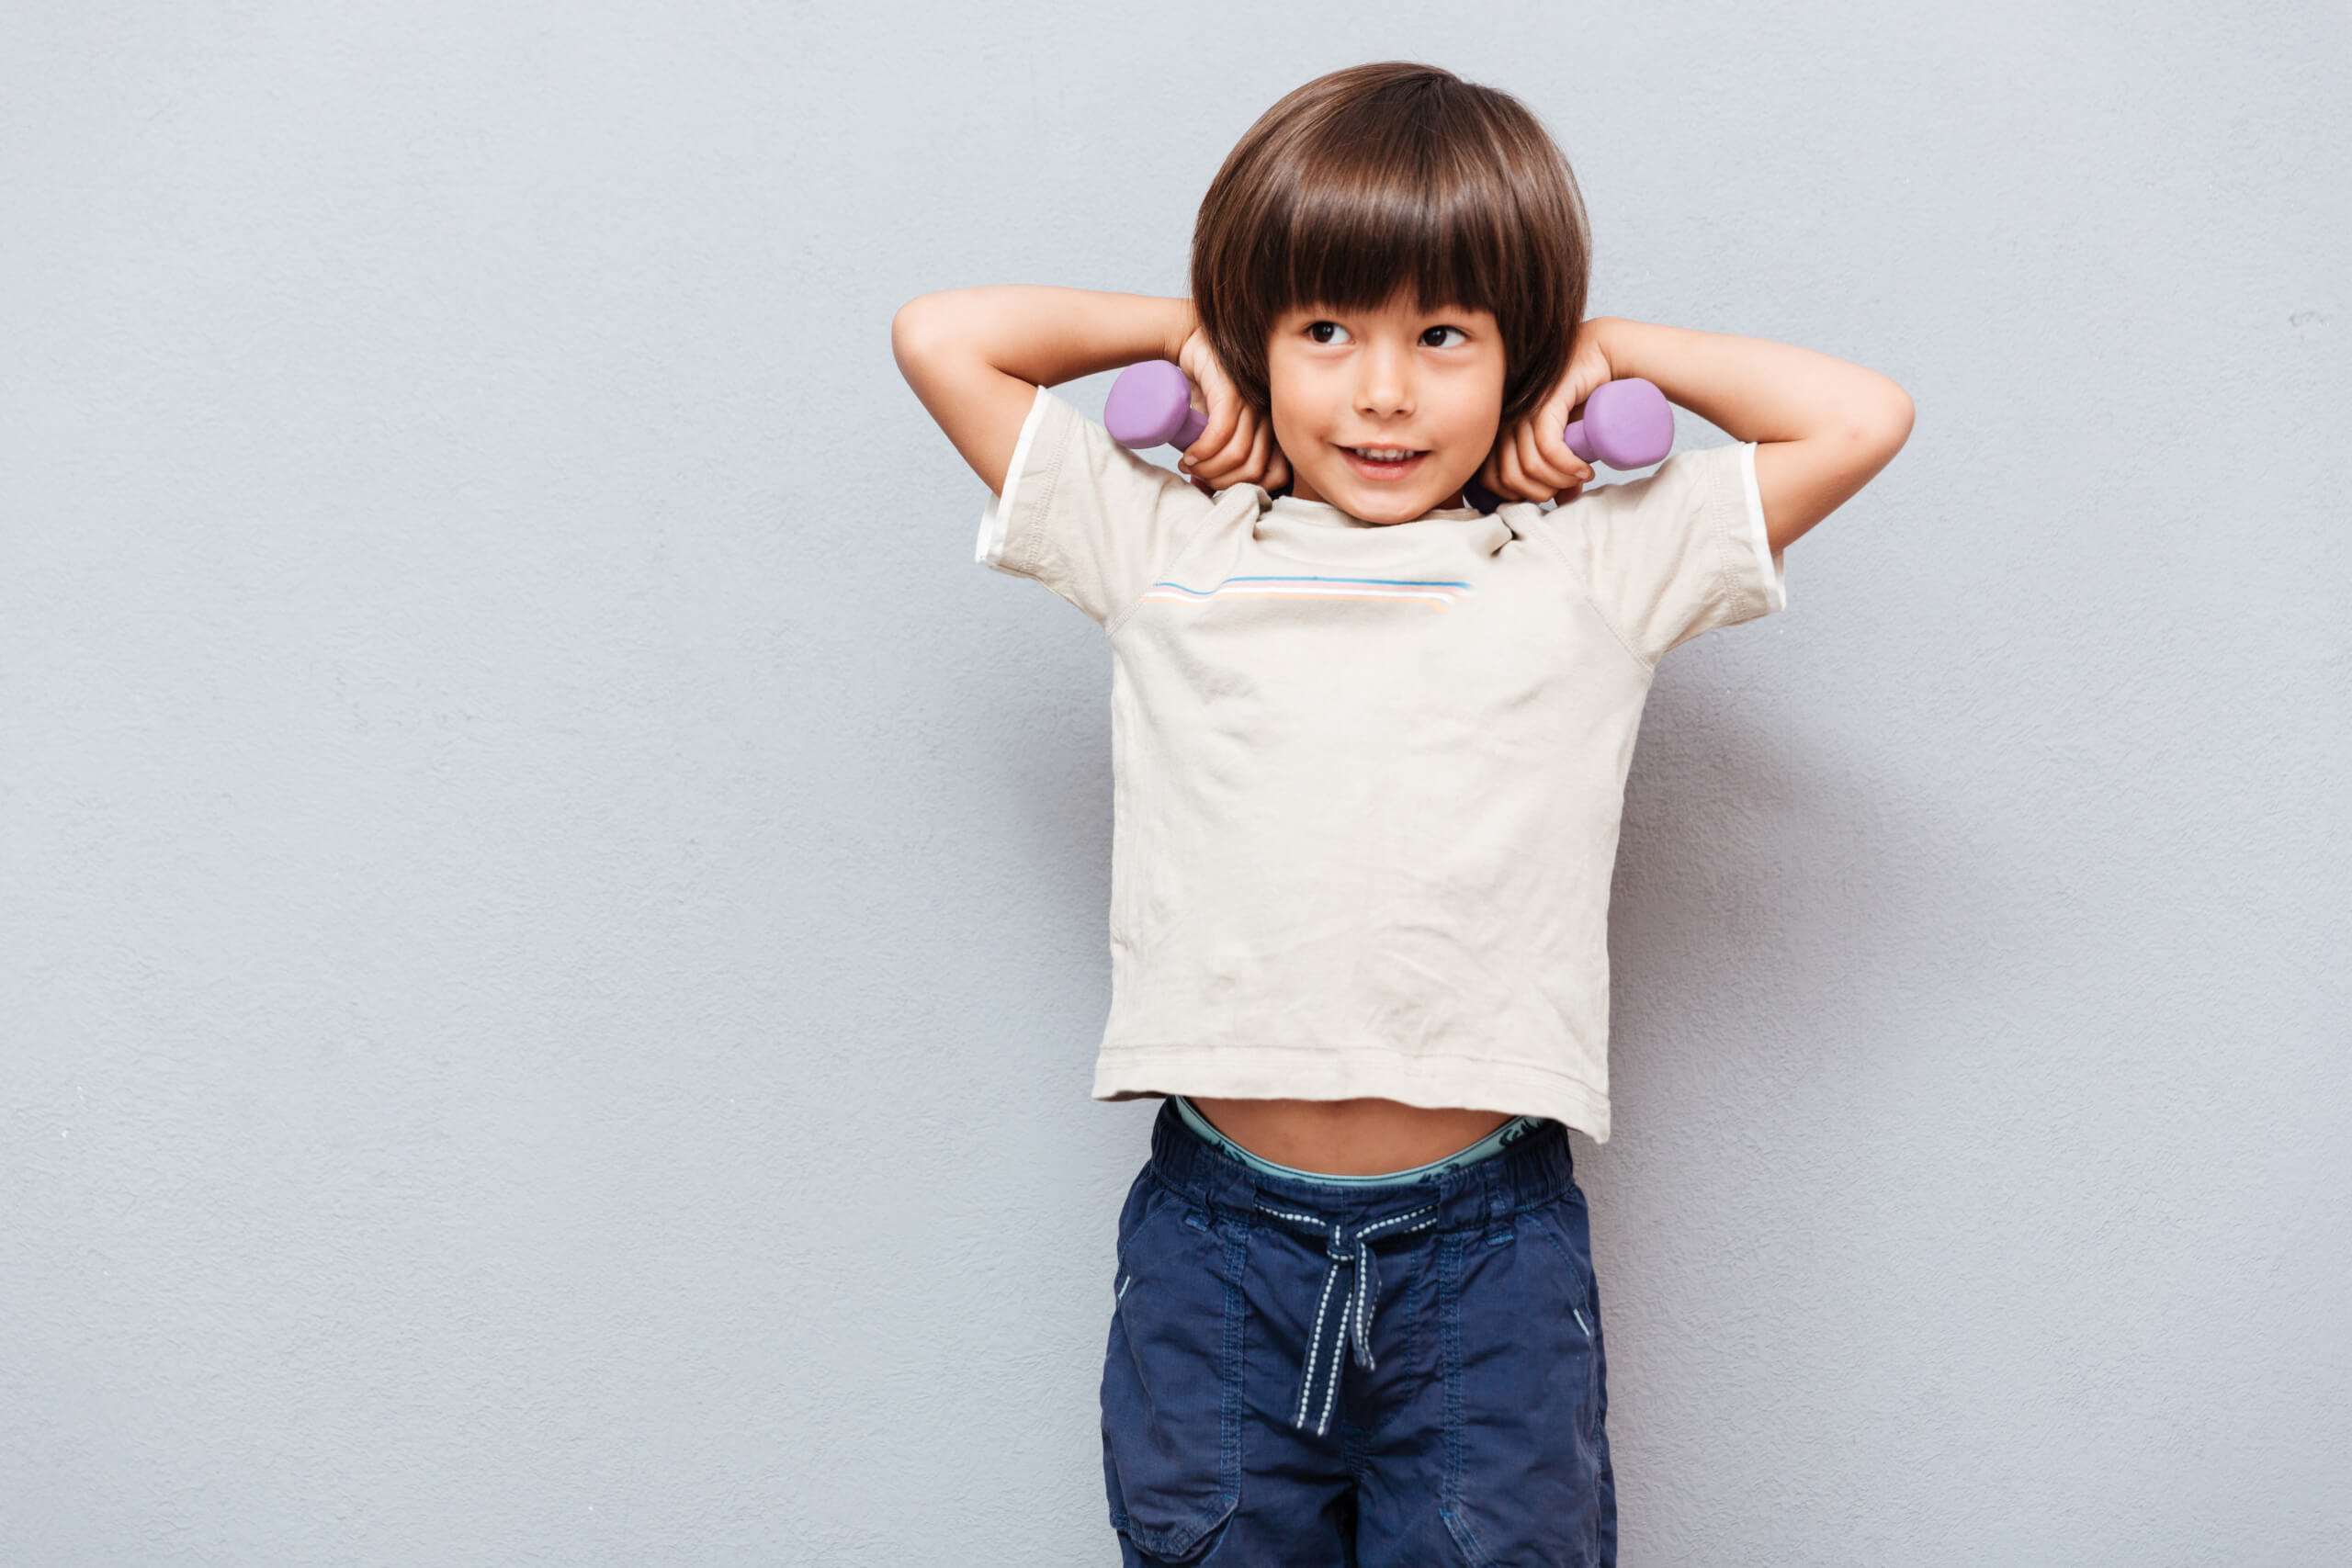 Selbstbewusstsein graphicstock happy cute little boy doing exercises with dumbbells over gray background r eMalar2e